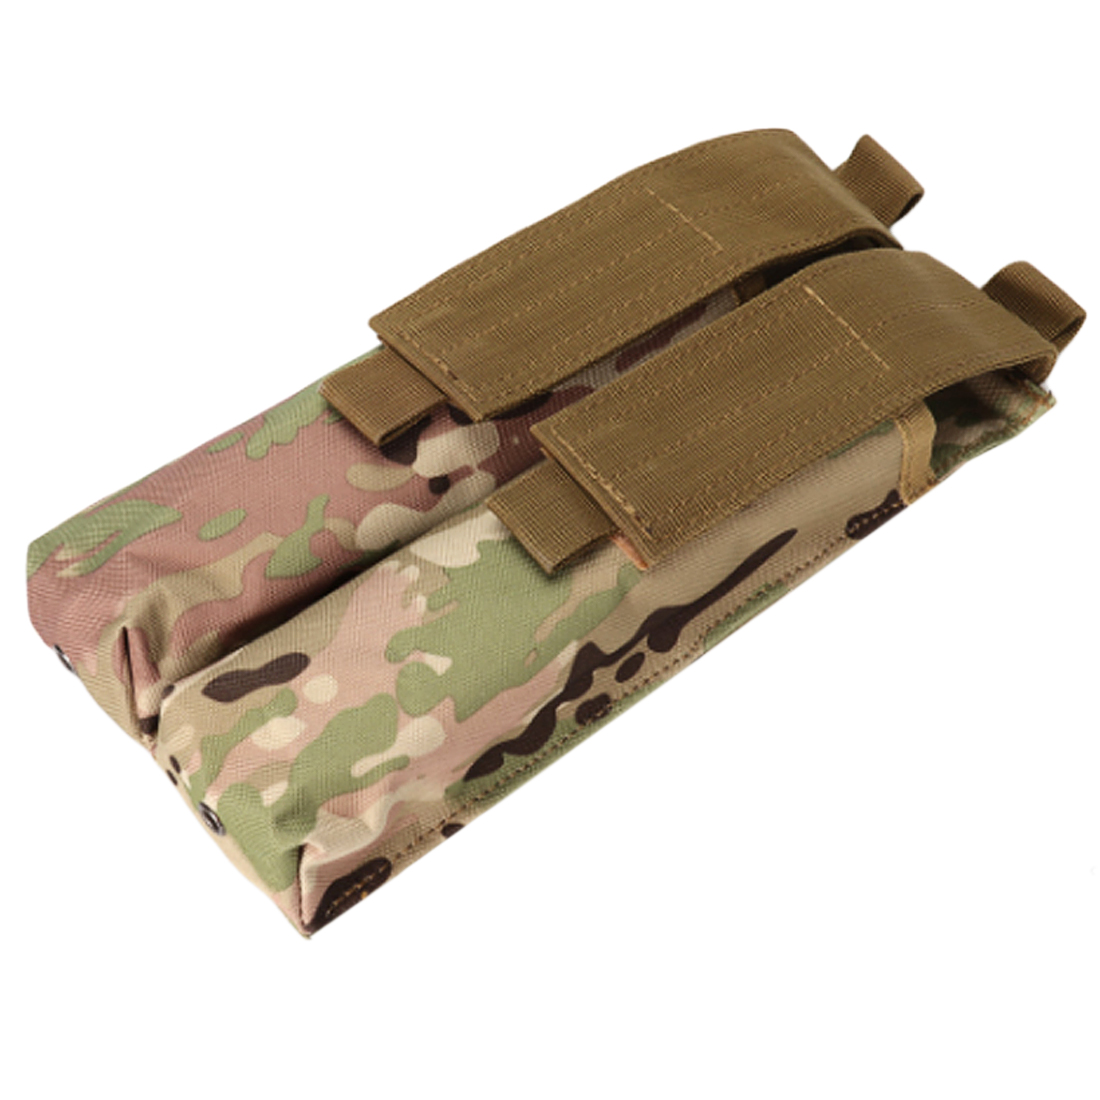 Molle Magazine Pouch  For P90 Magazine And Worker Short Darts Magazine - Camouflage